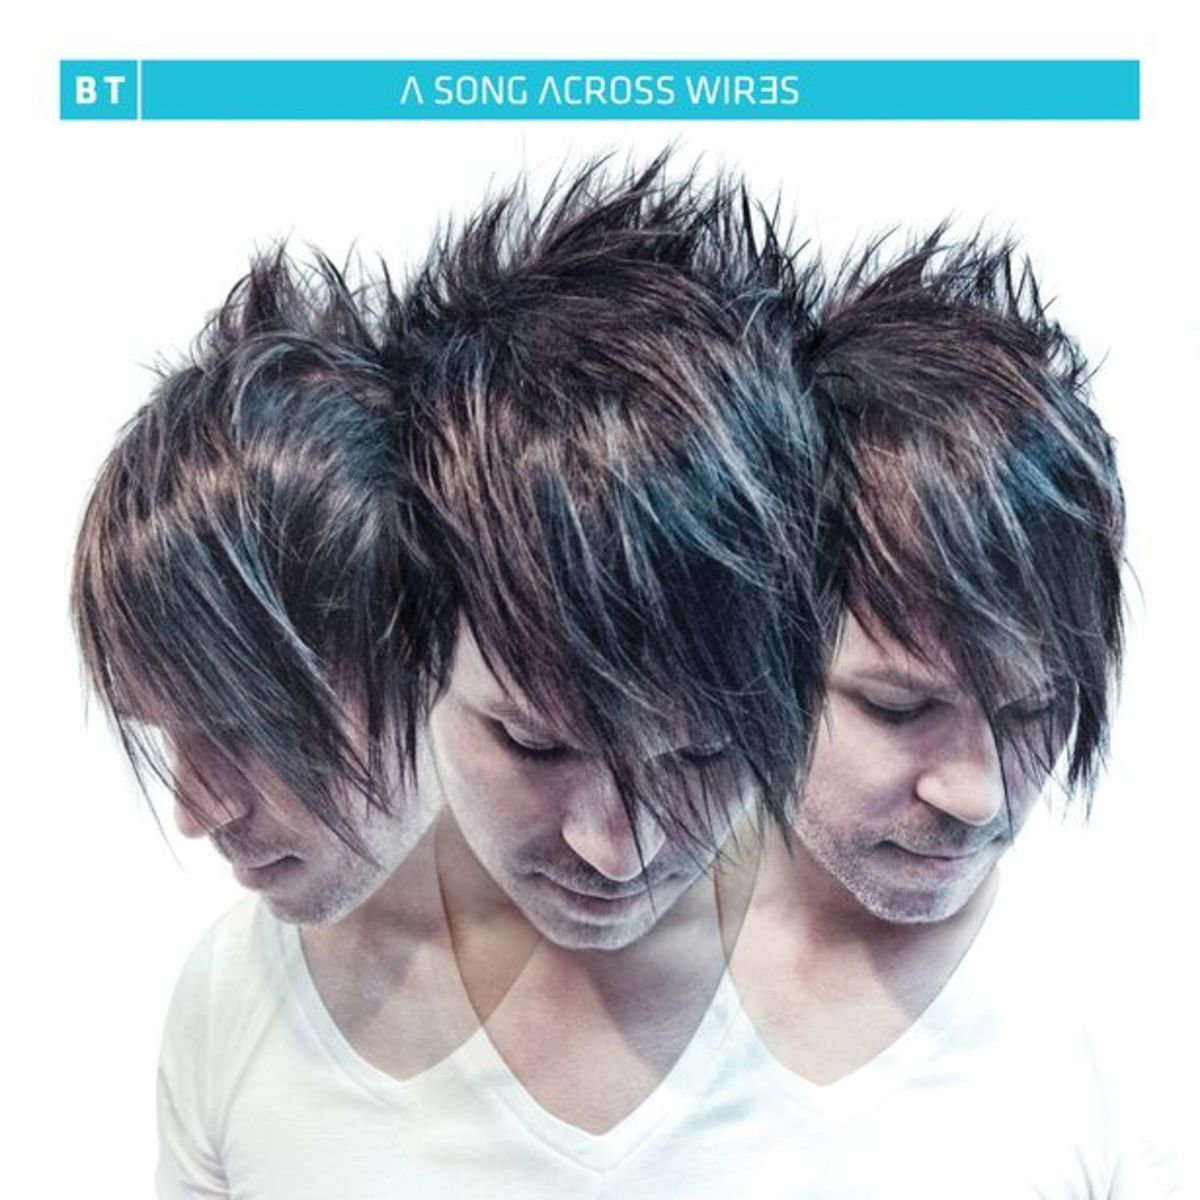 "BT Announces Ninth Studio Album ""A Song Across Wires"" Featuring Collaborations With tyDi, Adam K, Aqualung, Tritonal, JES And More"